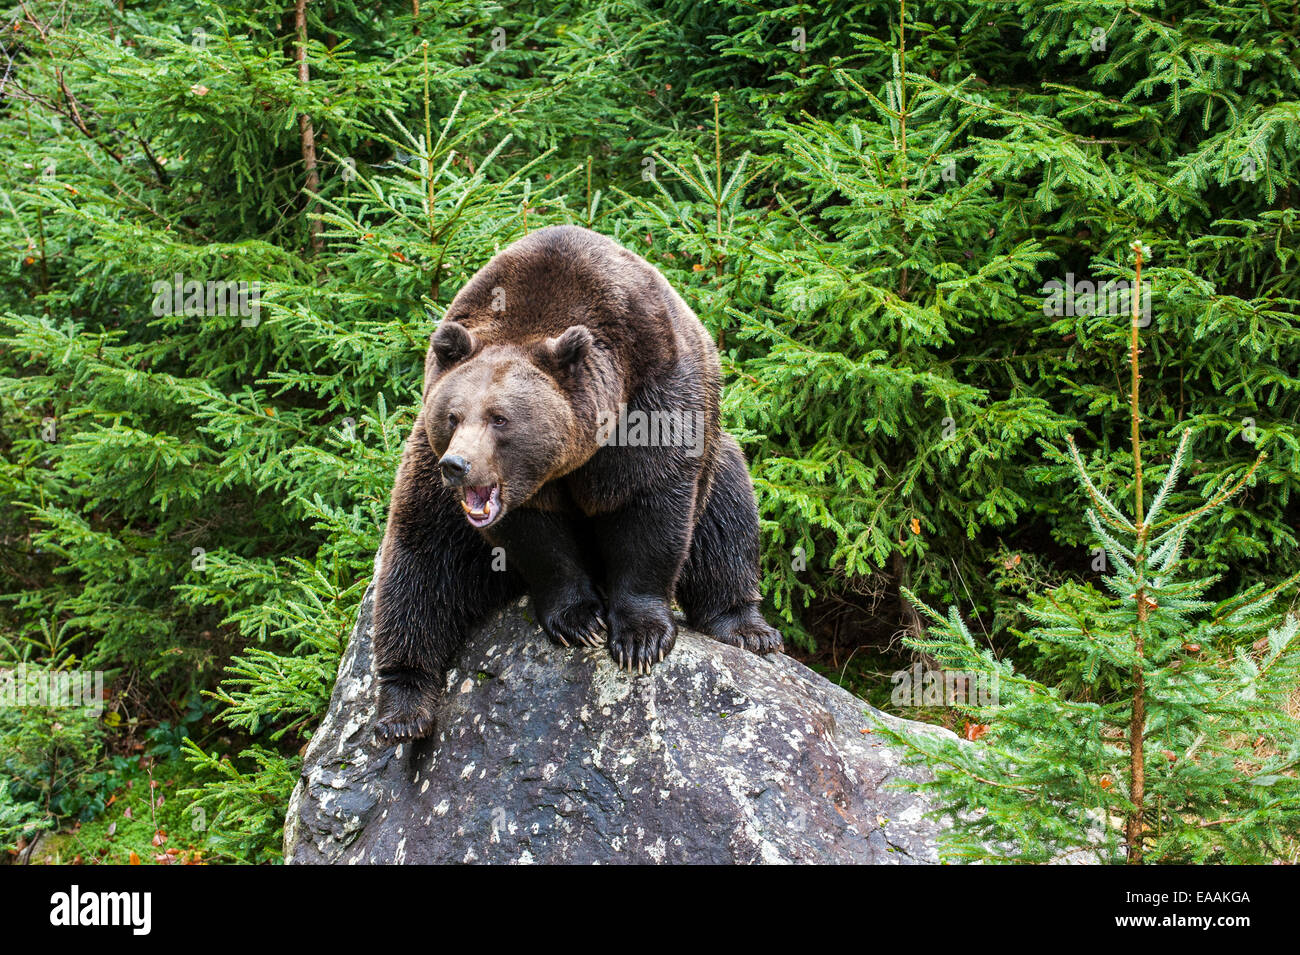 Growling Eurasian brown bear (Ursus arctos arctos) sitting on rock in forest with pine trees - Stock Image